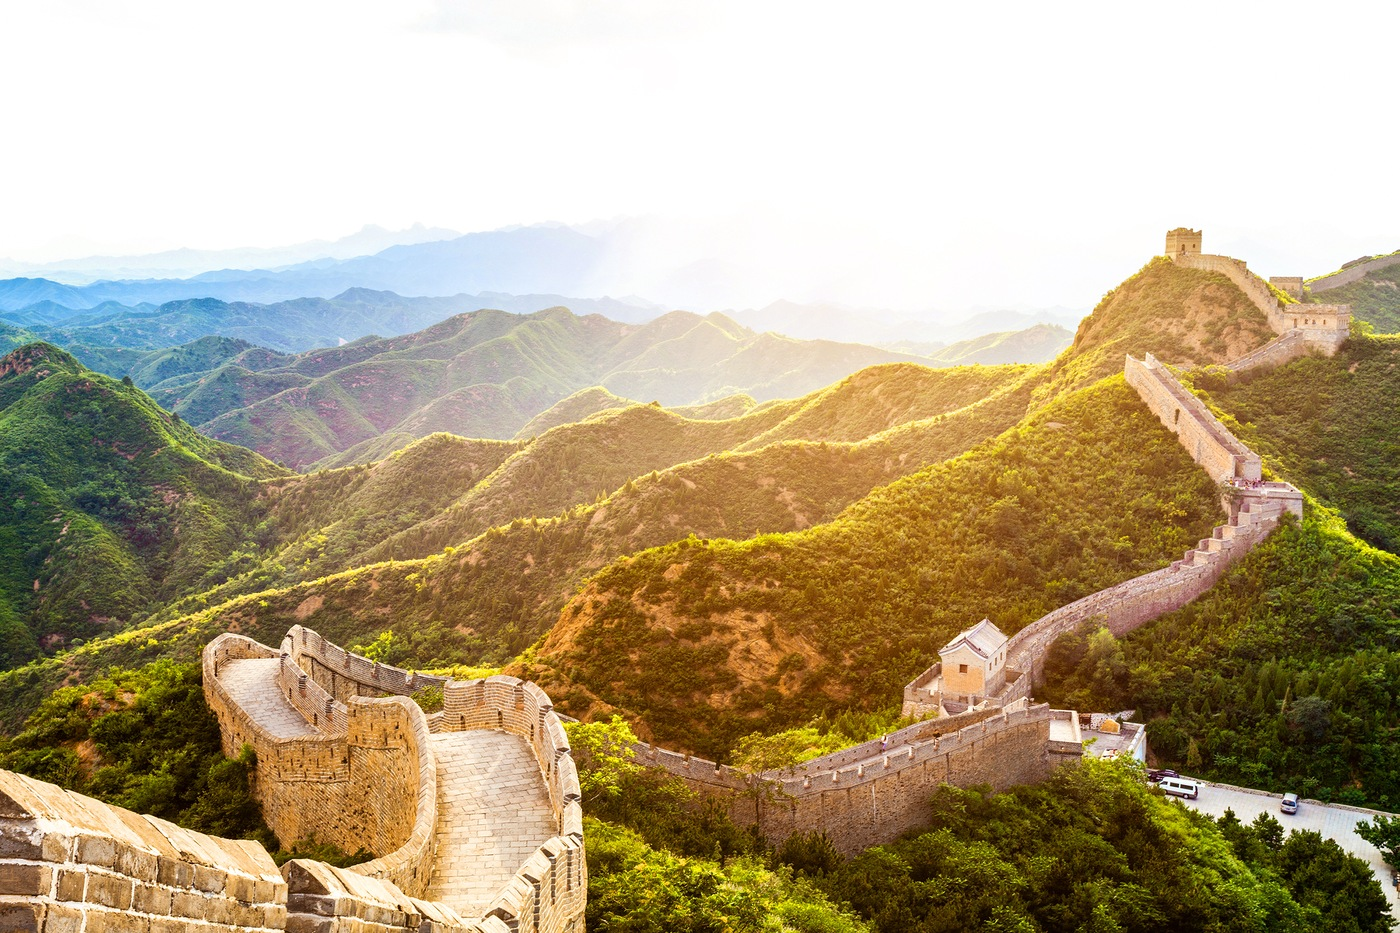 Great Wall of China 20 travel bucket list ideas to do before 40 20 Travel Bucket List Ideas To do before 40 walk across the great wall of china b09f